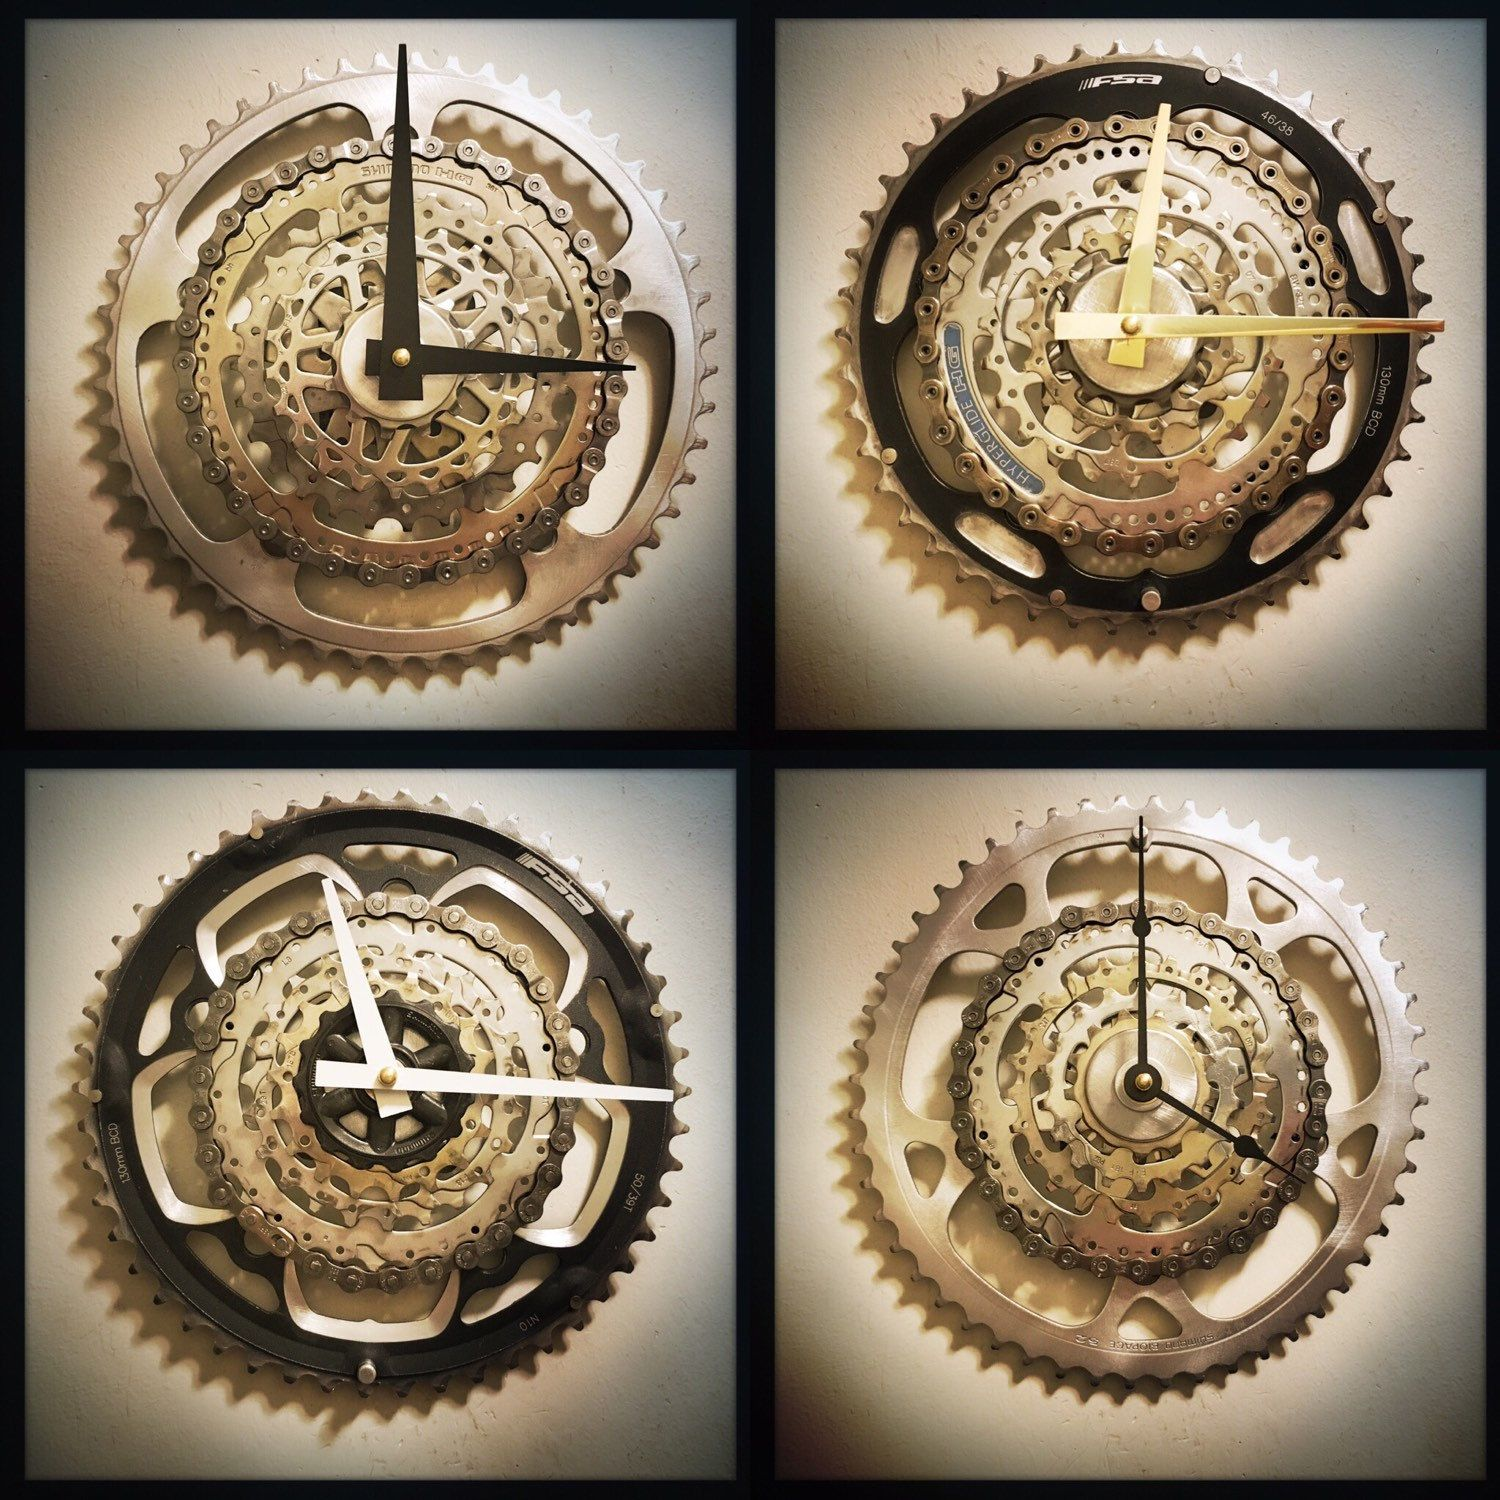 Steampunk wall clock cyclist gift mountain biker gift unique steampunk wall clock cyclist gift mountain biker gift unique wall clock industrial decor man cave gift unique housewarming gift amipublicfo Images